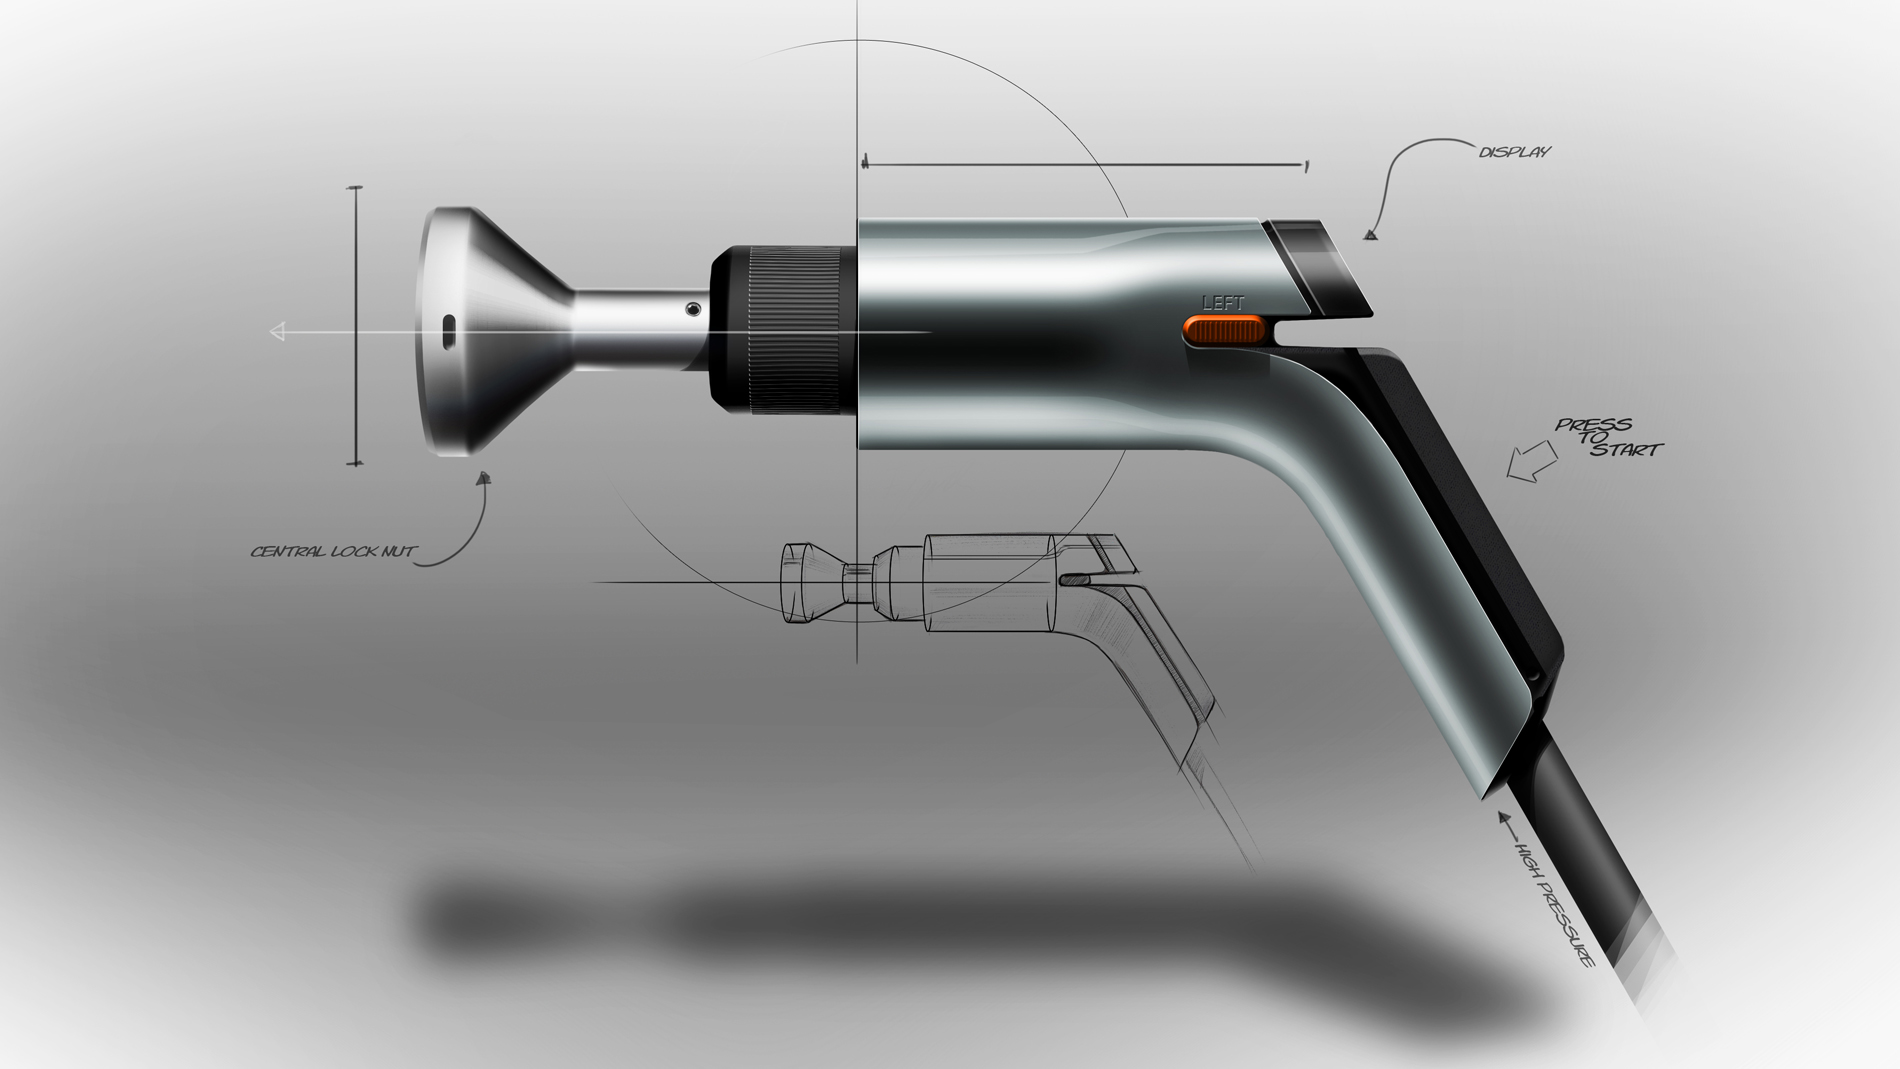 pneumatic screwdriver sketch with handwritten explanation on grey background